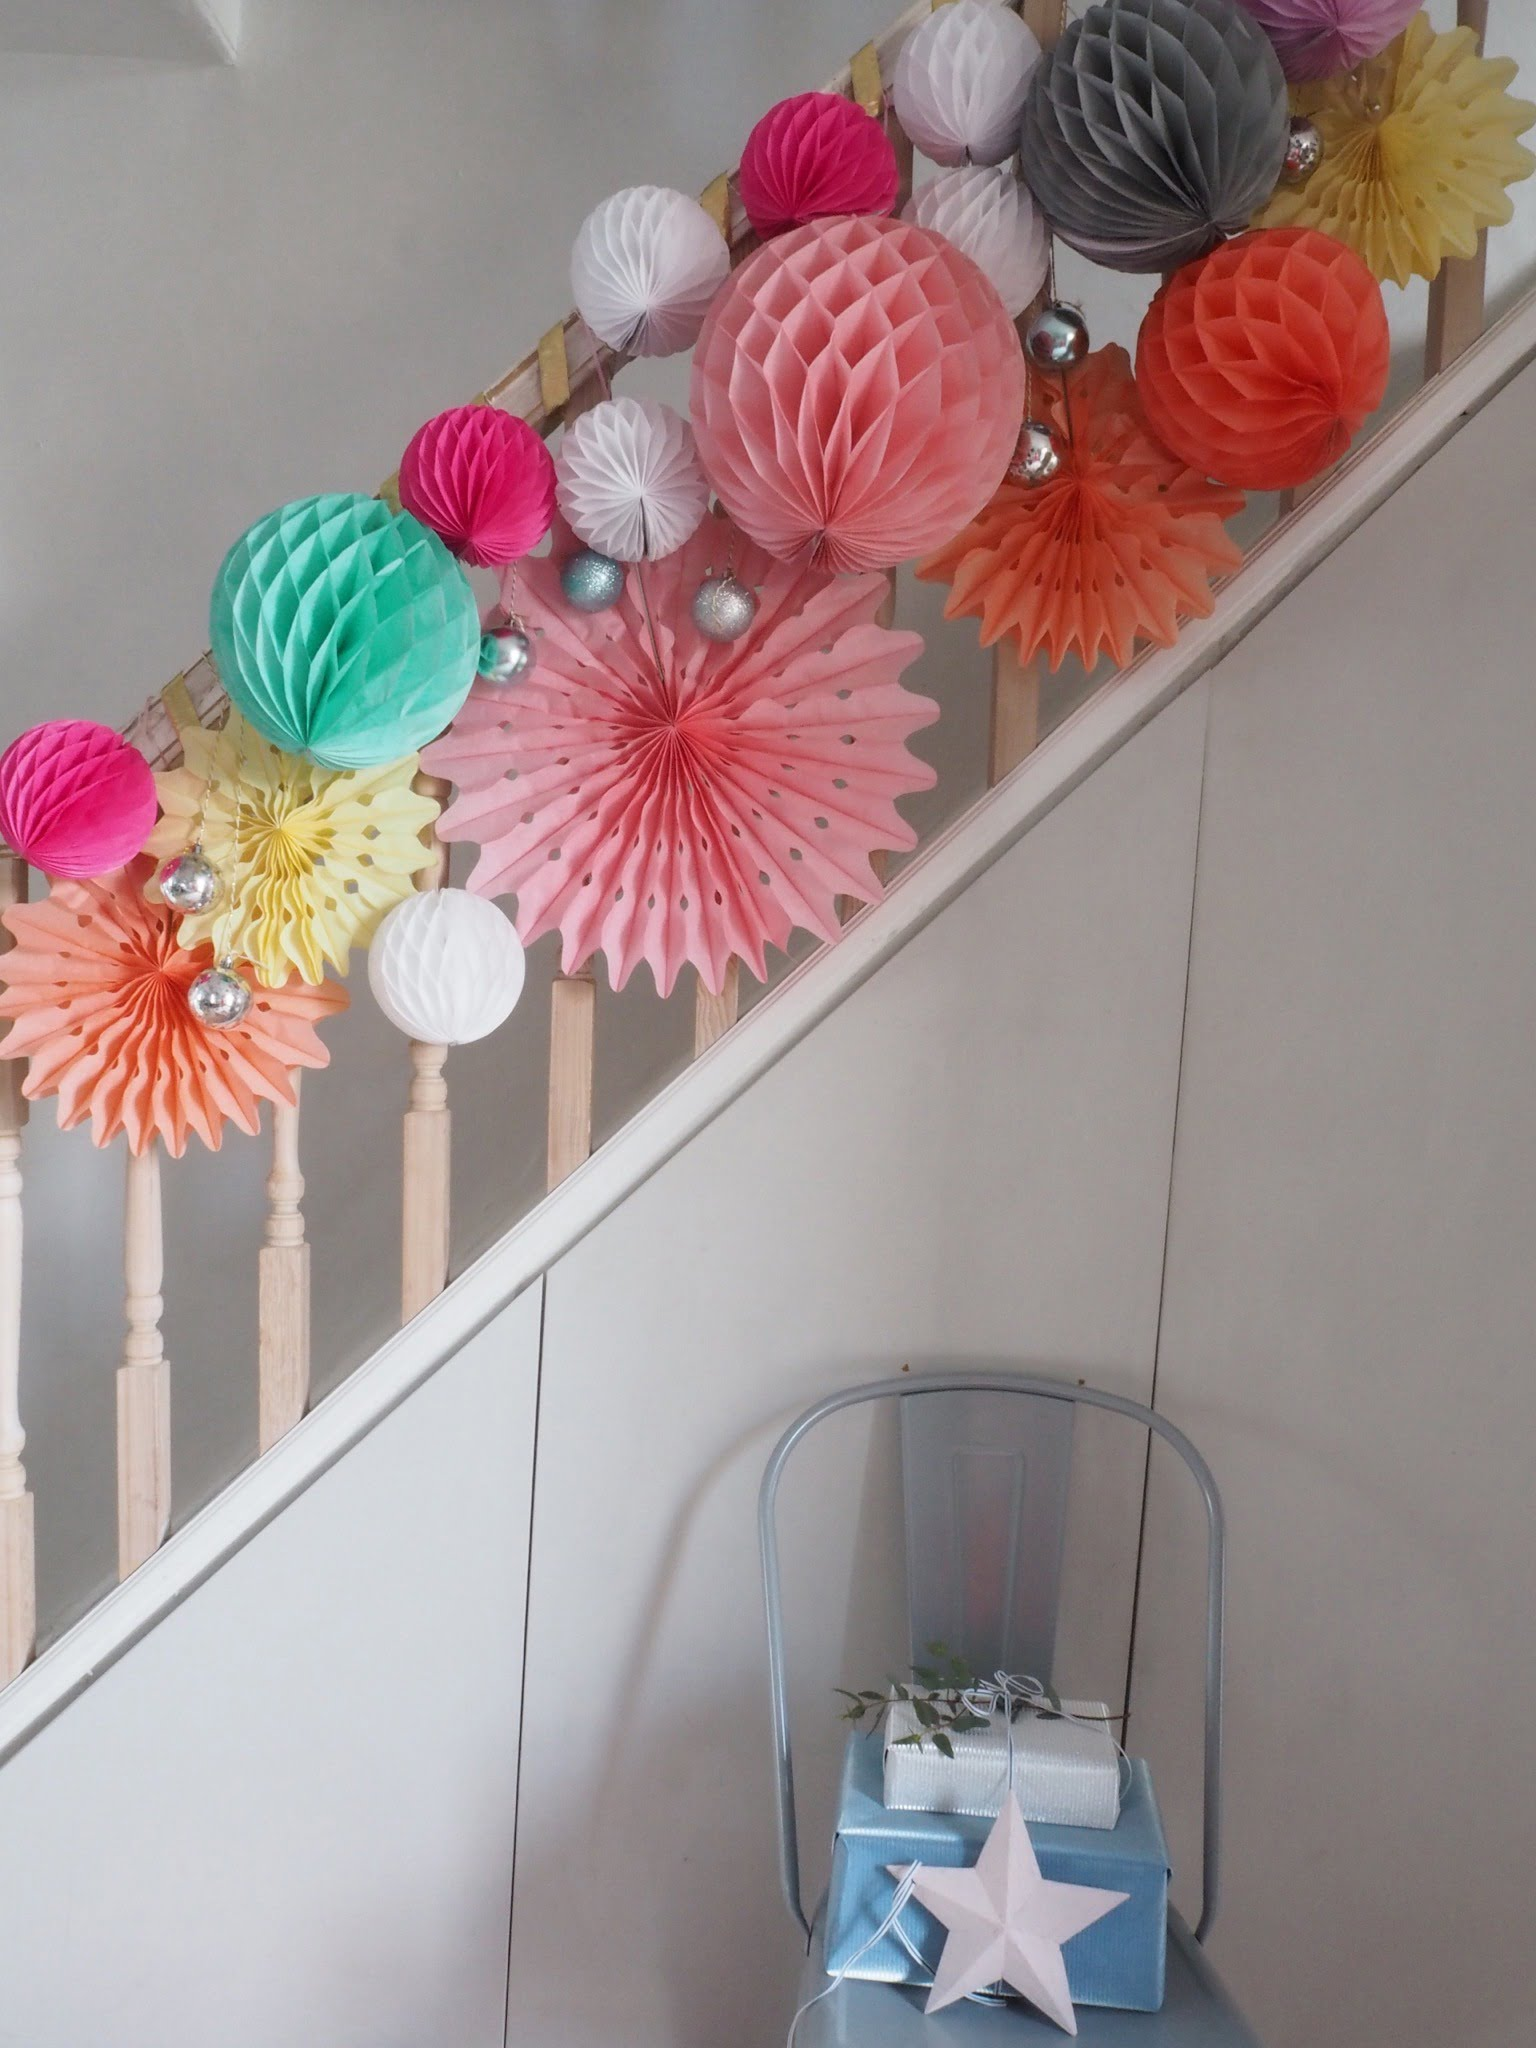 Set the perfect tone for your festive party with this pretty paper garland.It'sfun, festive and dead easy to do says interior stylist Maxine Brady.